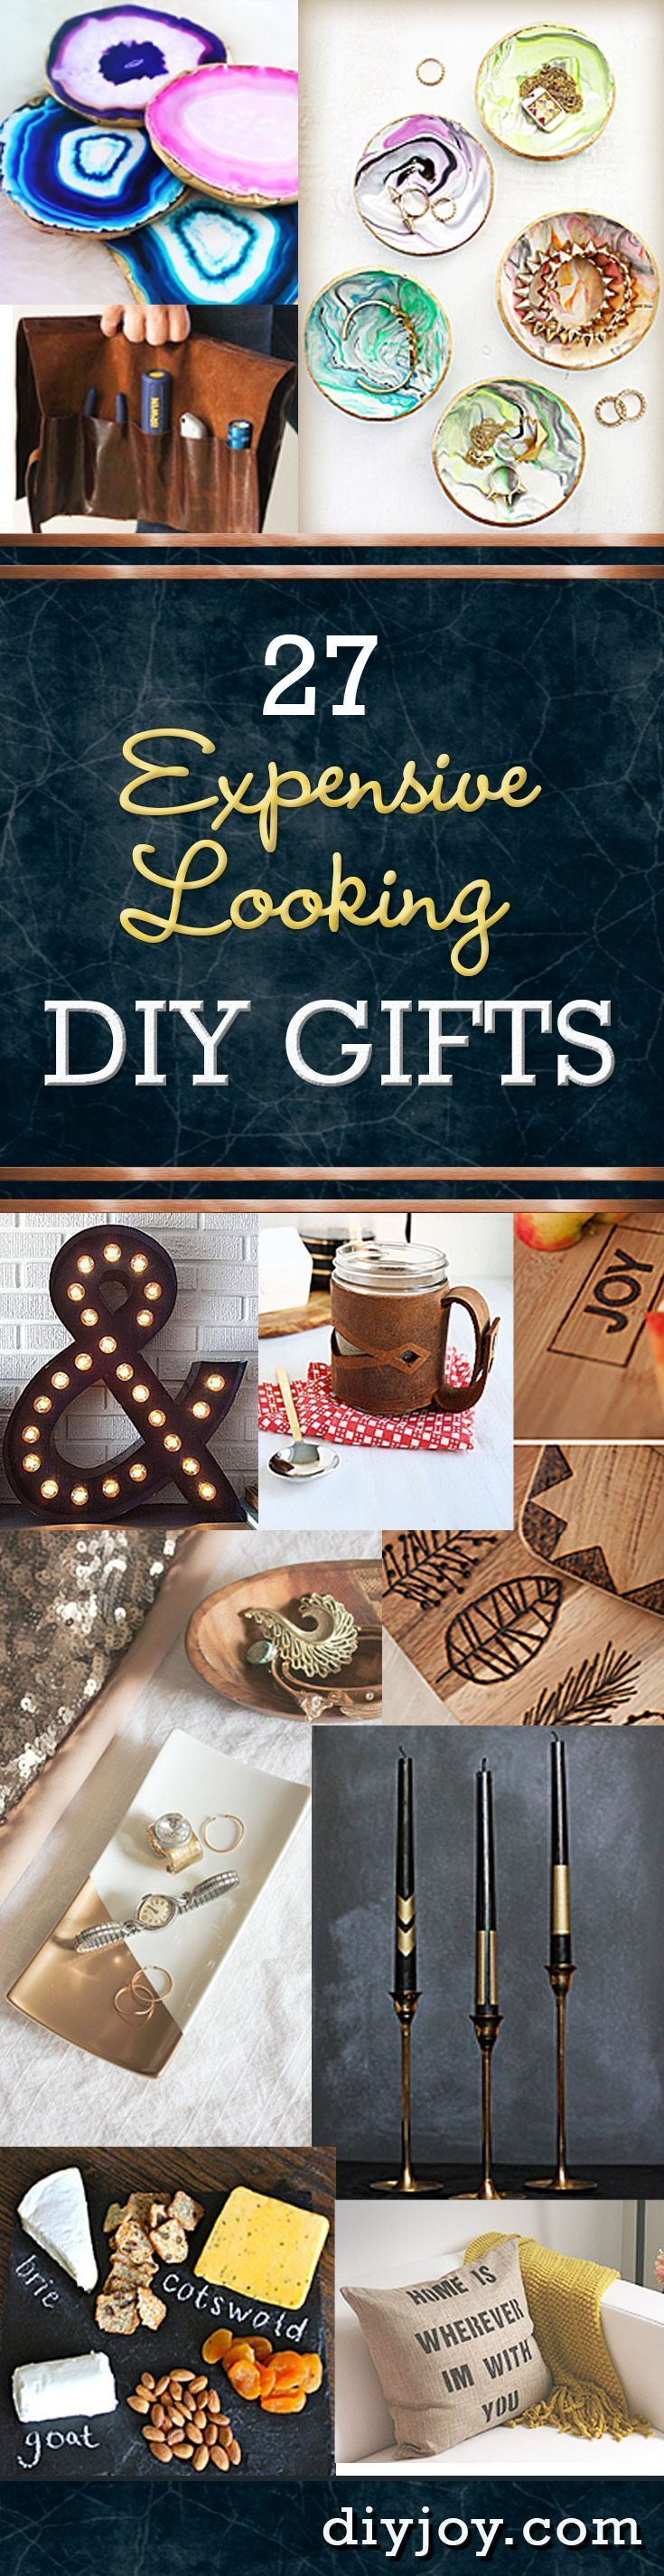 Christmas gift ideas diy pinterest projects